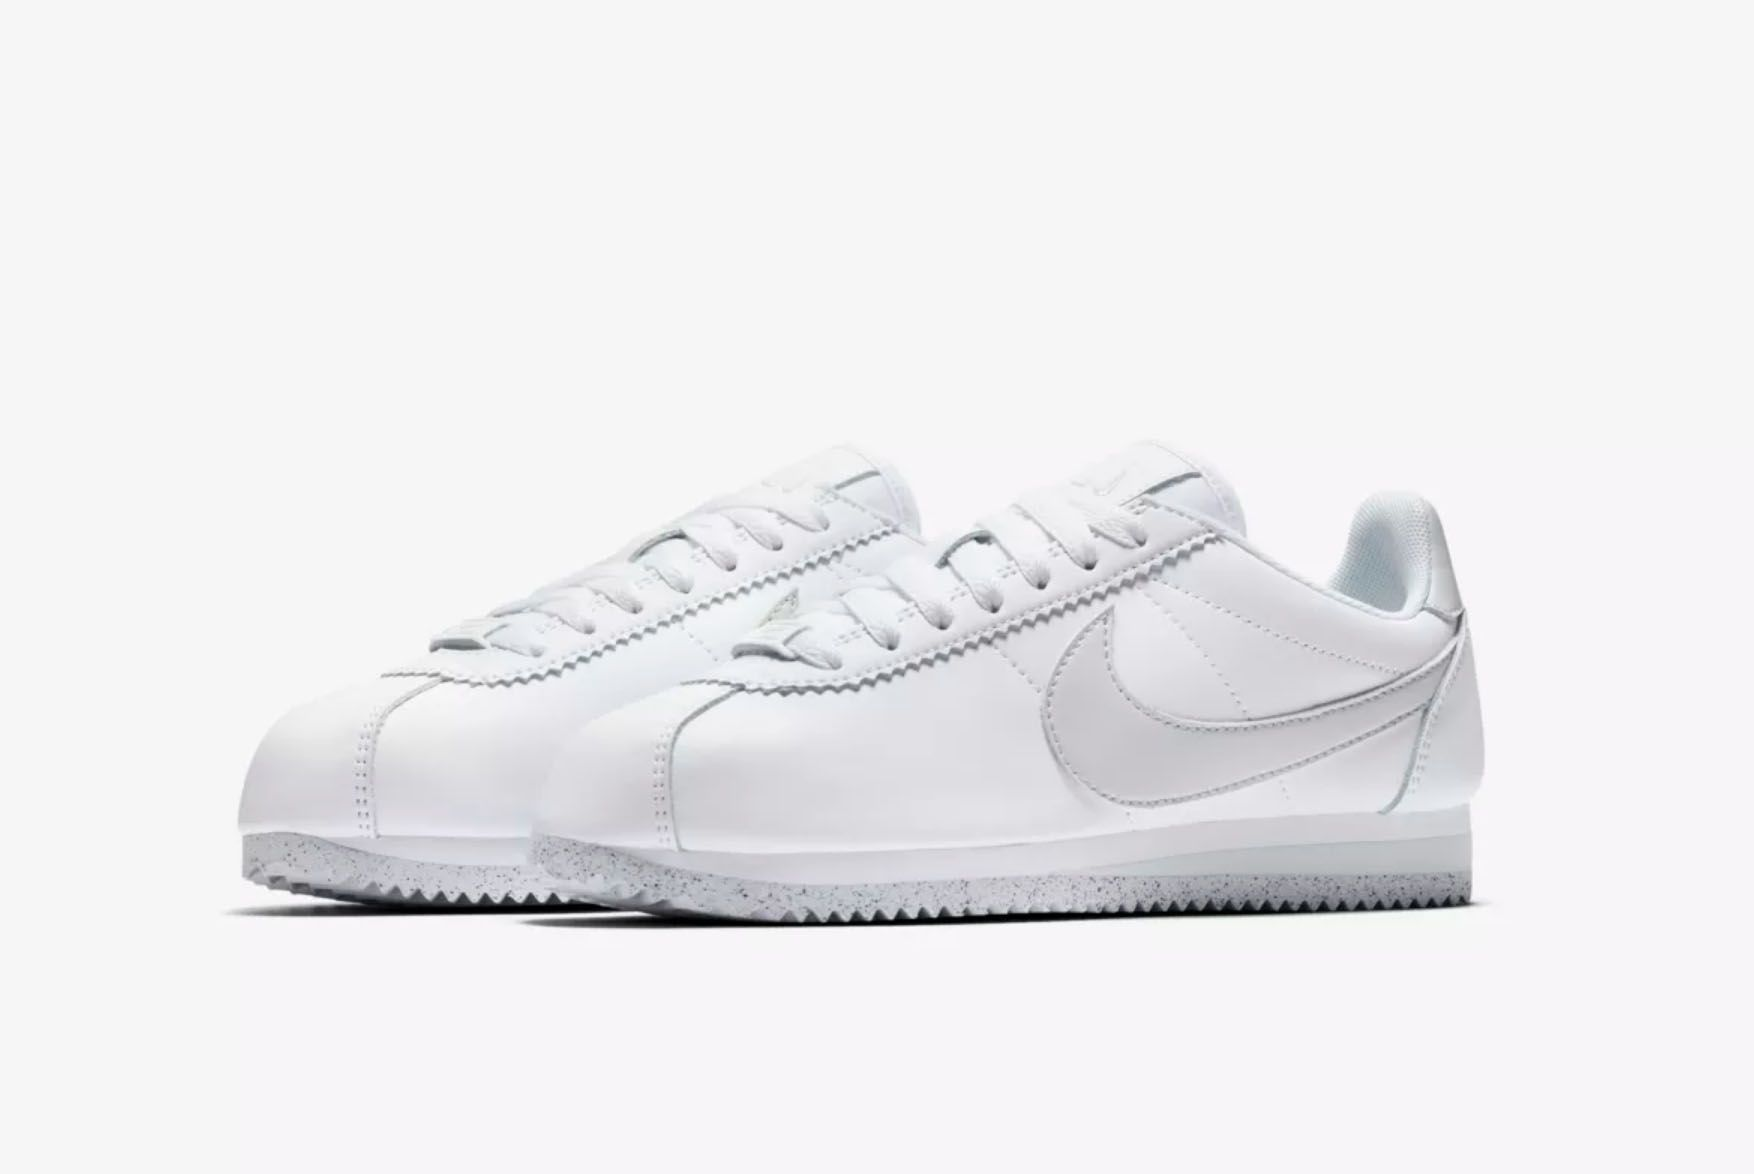 online retailer a4795 7060c Nike Classic Cortez Flyleather Release | New Nikes